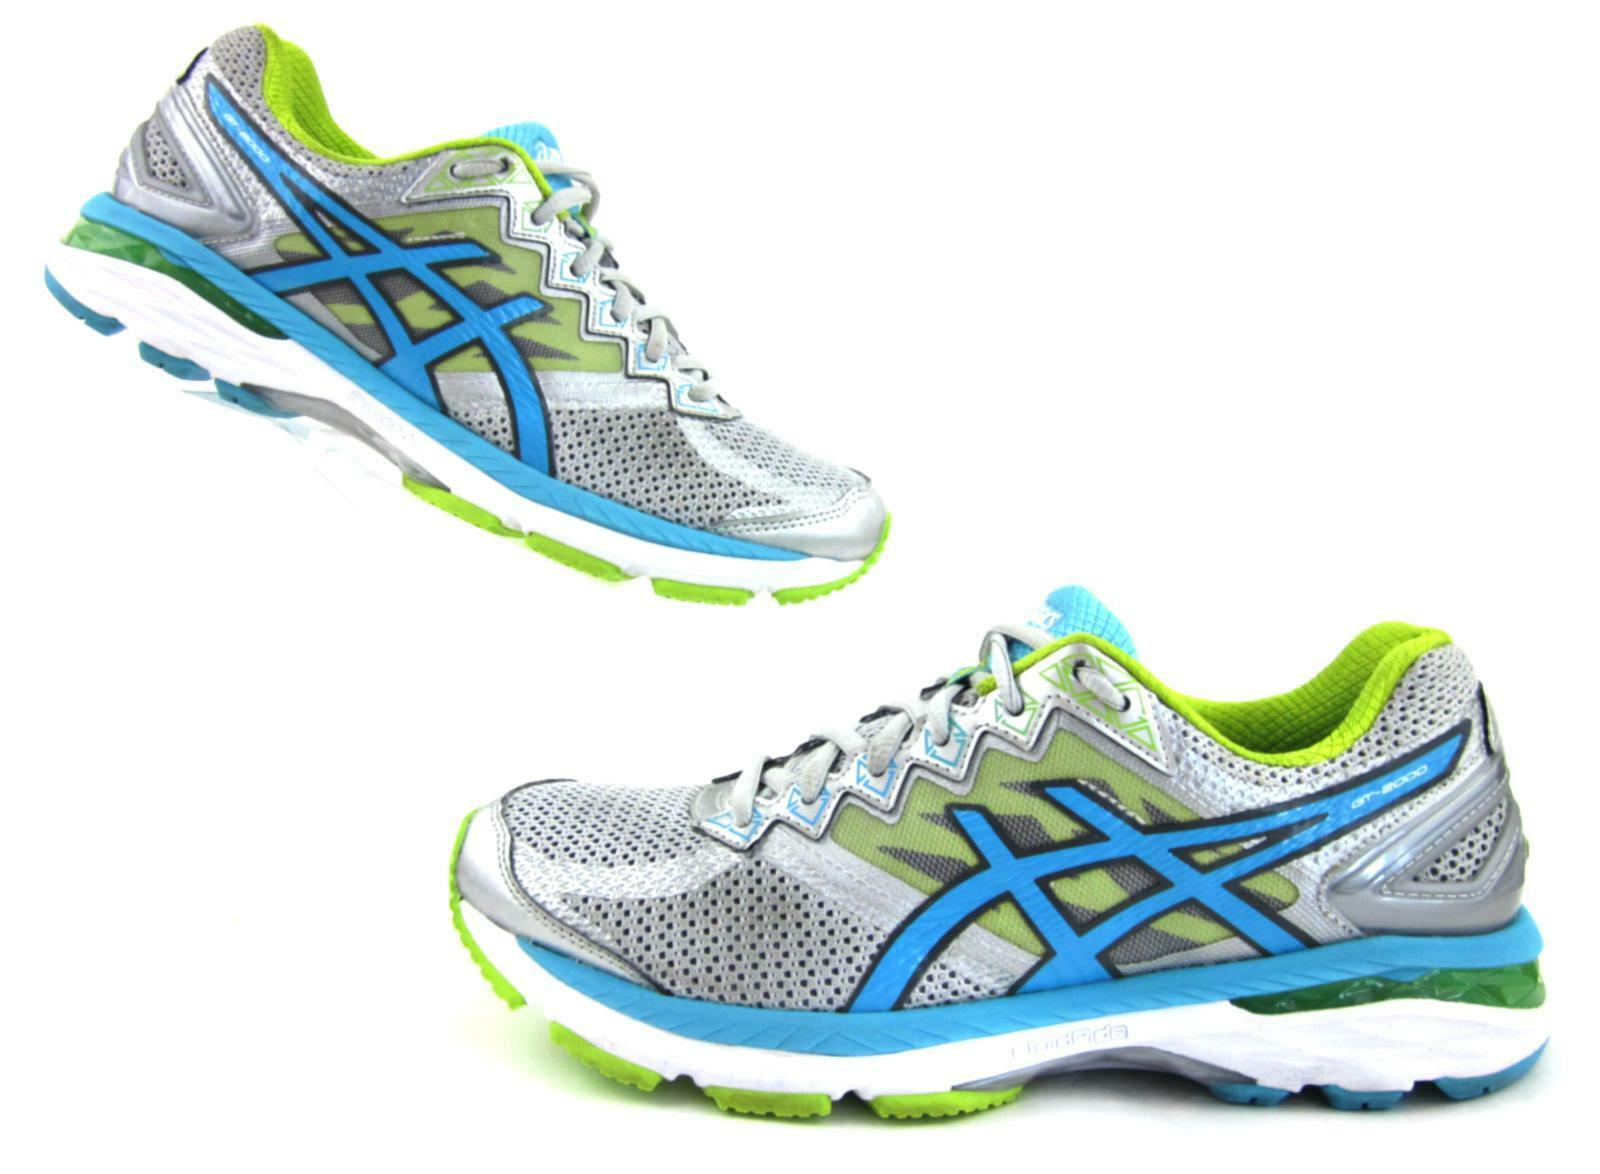 Asics GT-2000 V4 Running shoes Silver   Turquoise   Lime Punch US 8.5